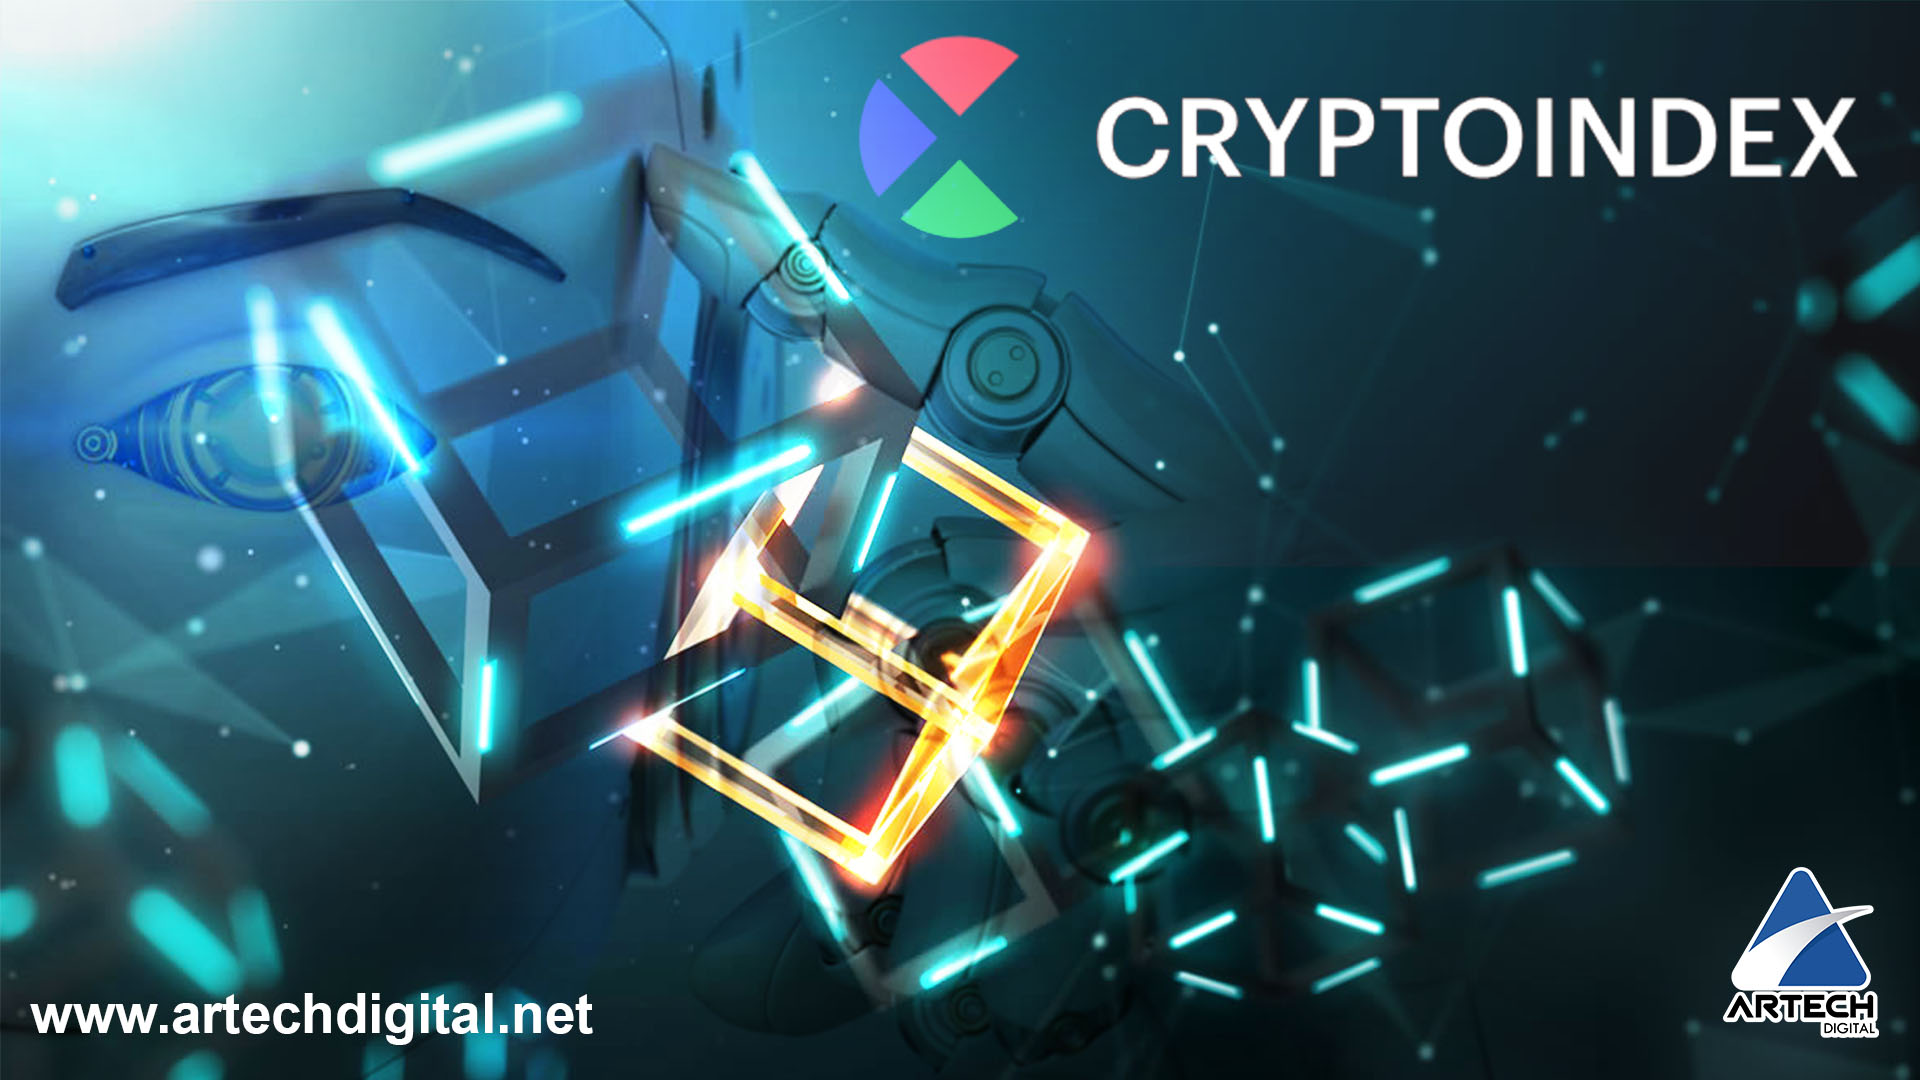 Cryptoindex100 - Artech Digital